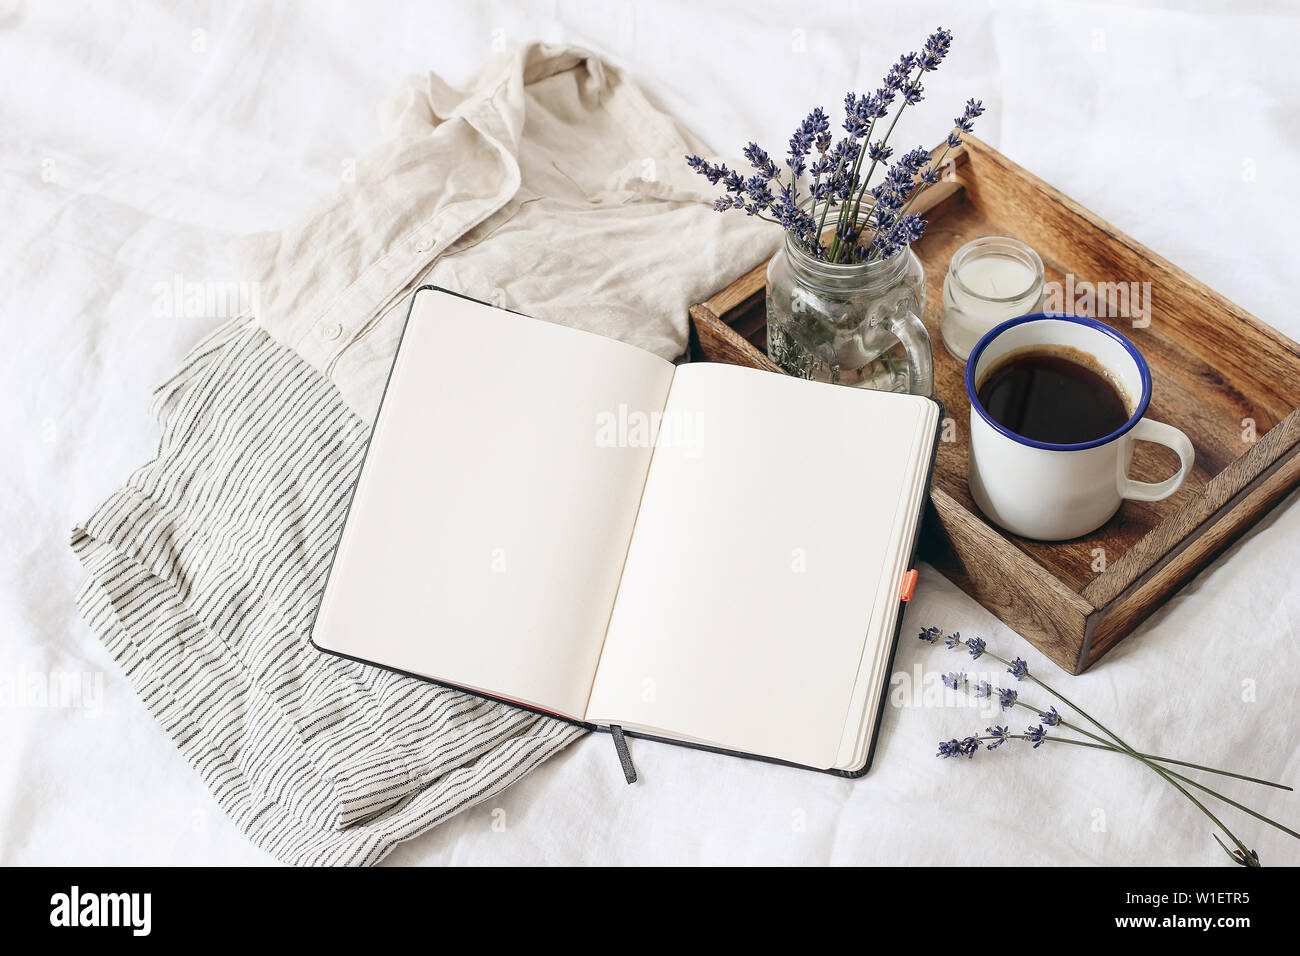 French summer still life. Feminine lifestyle composition. Cup of coffee, lavender flowers bouquet, candle on wooden tray. Linen shirt nad trousers on Stock Photo